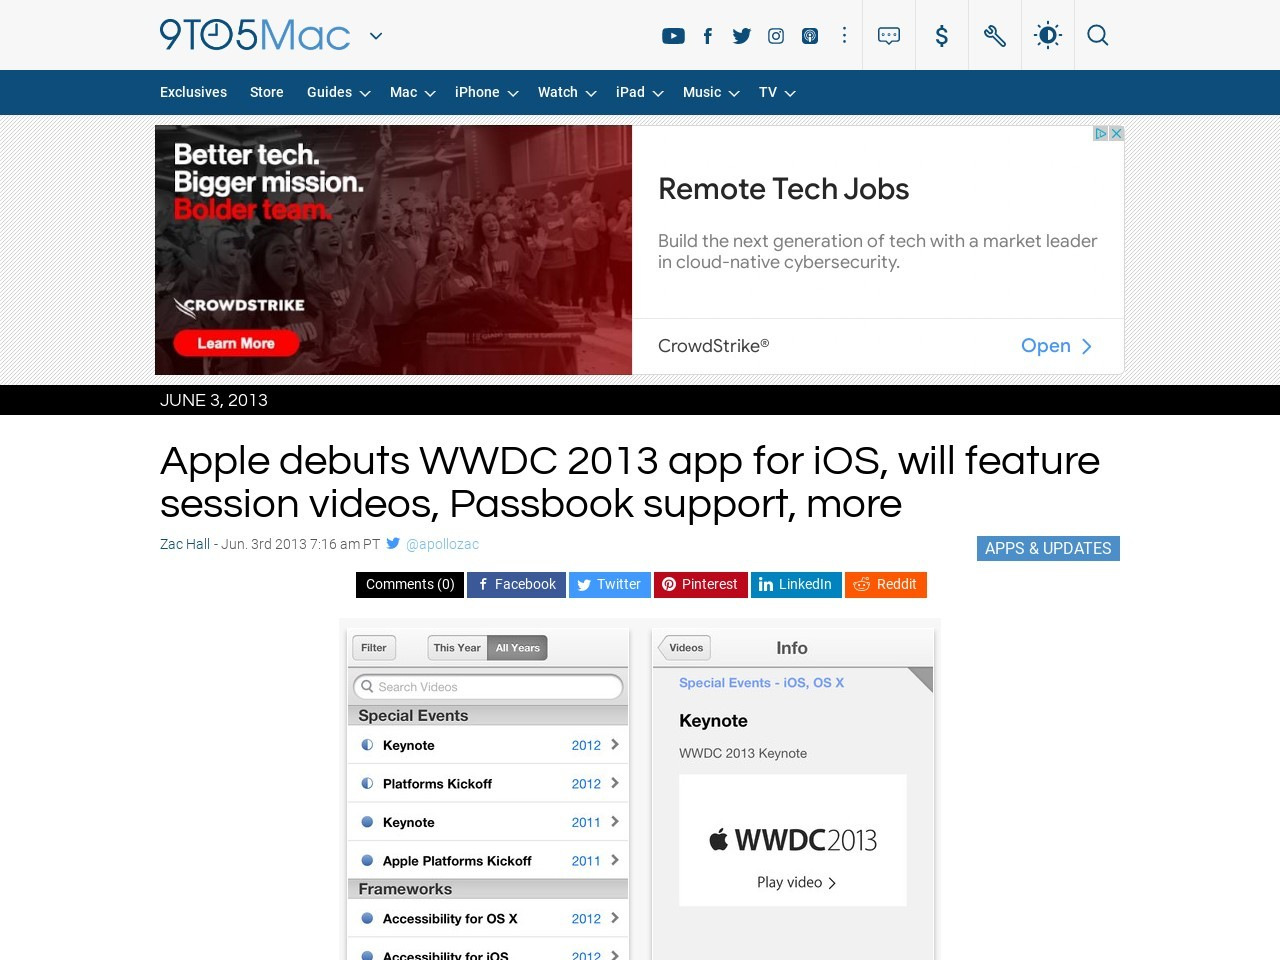 Apple debuts WWDC 2013 app for iOS, will feature session videos …